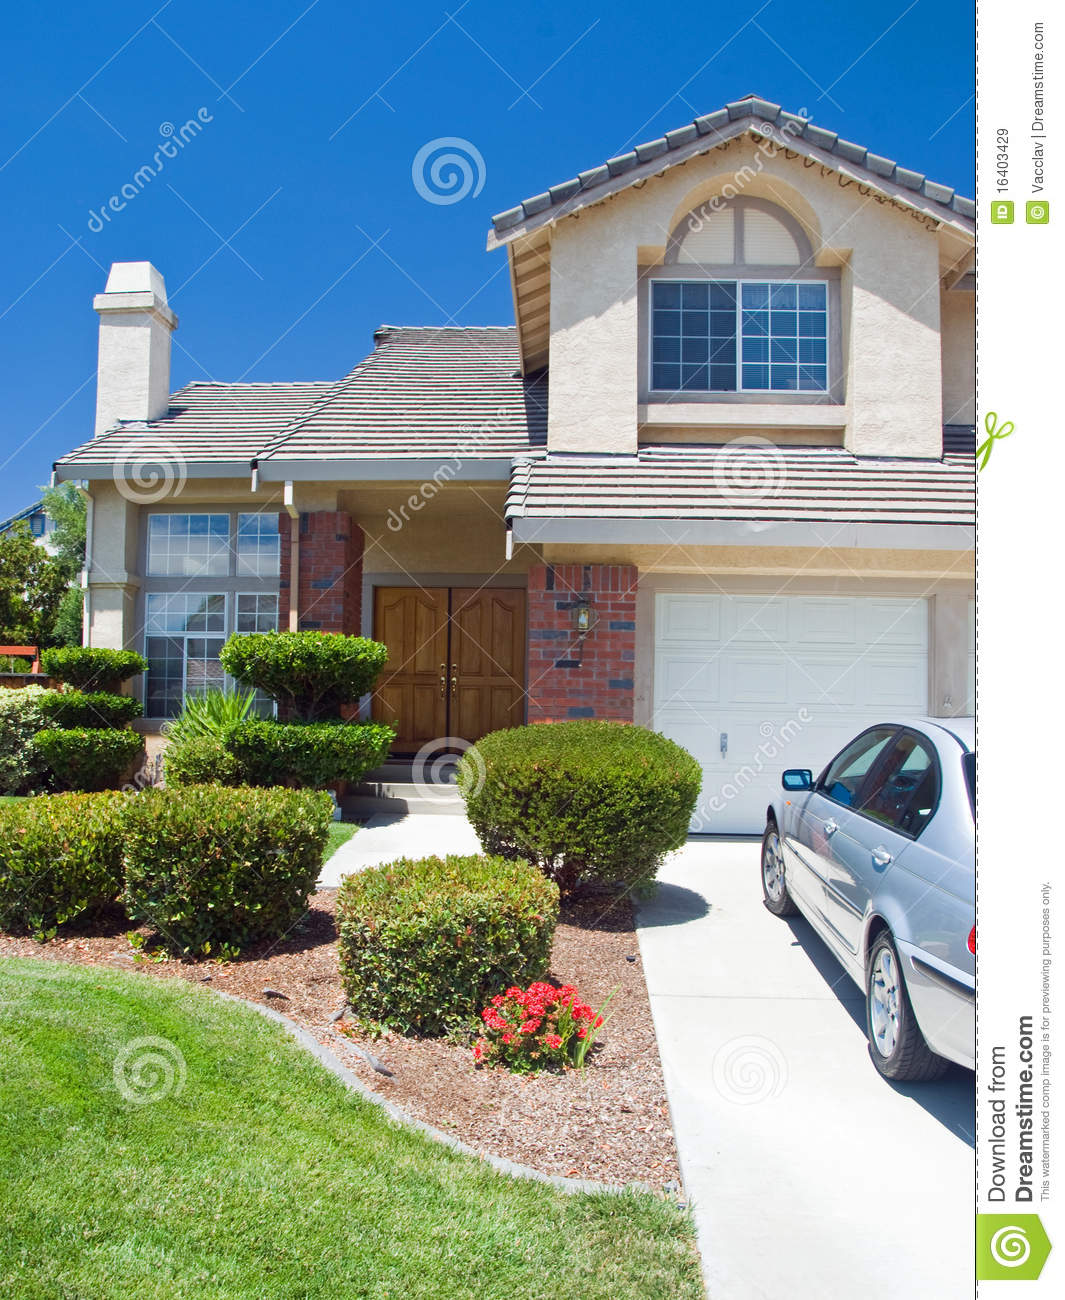 New american dream home royalty free stock images image for New american homes